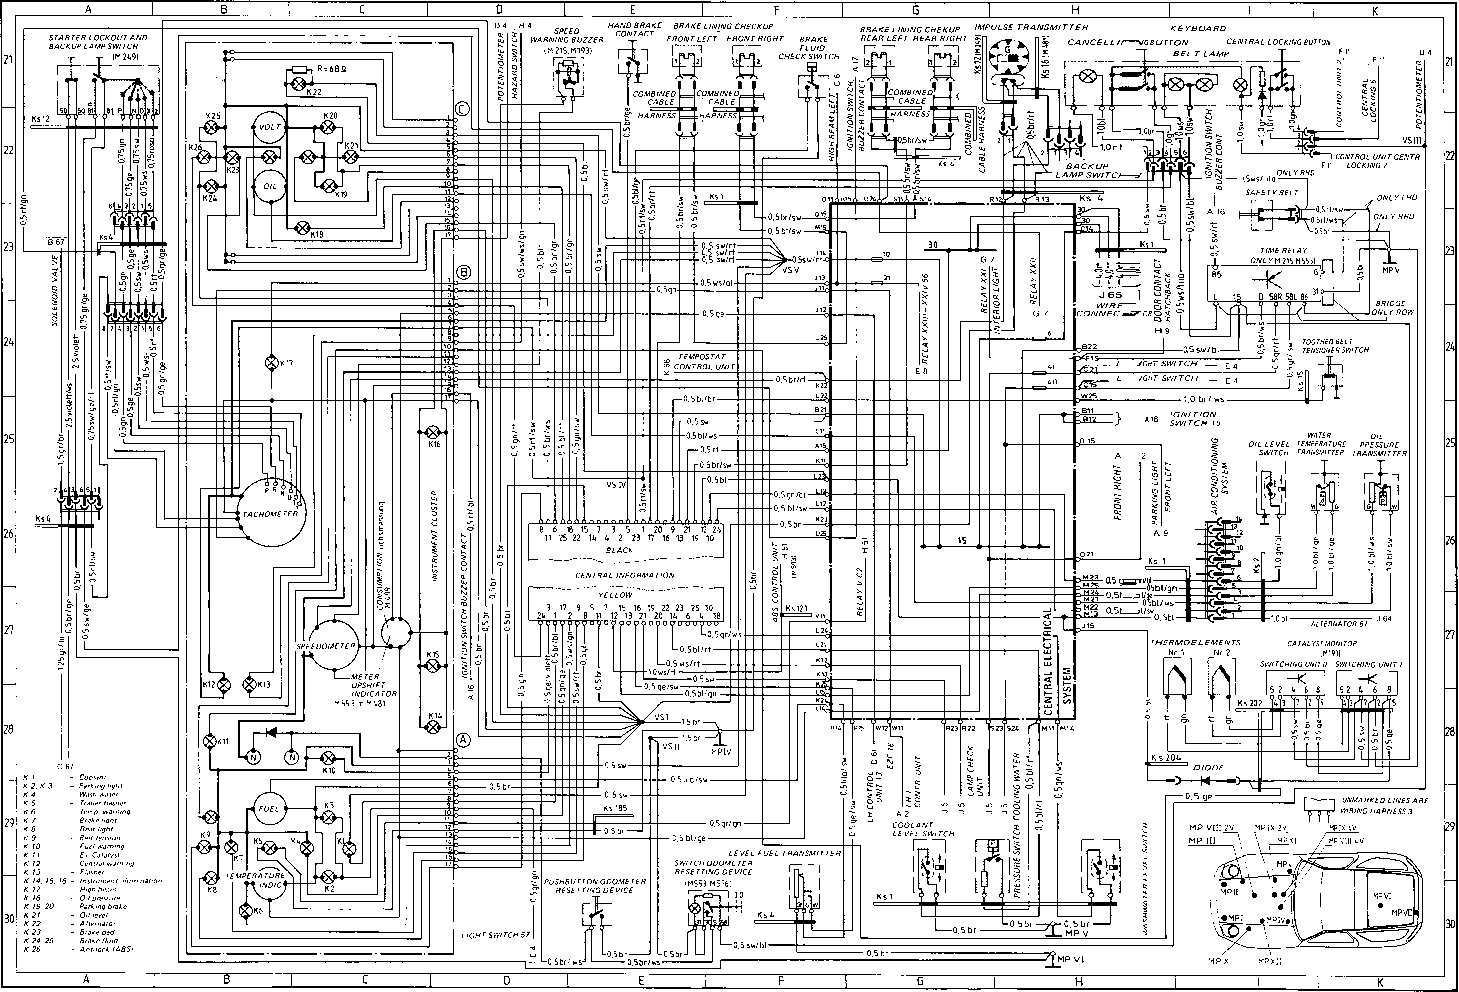 2129_923_2014 porsche 928 wiring diagram porsche 928 wiring diagram free on porsche download wirning diagrams 1986 porsche 944 fuse box diagram at crackthecode.co